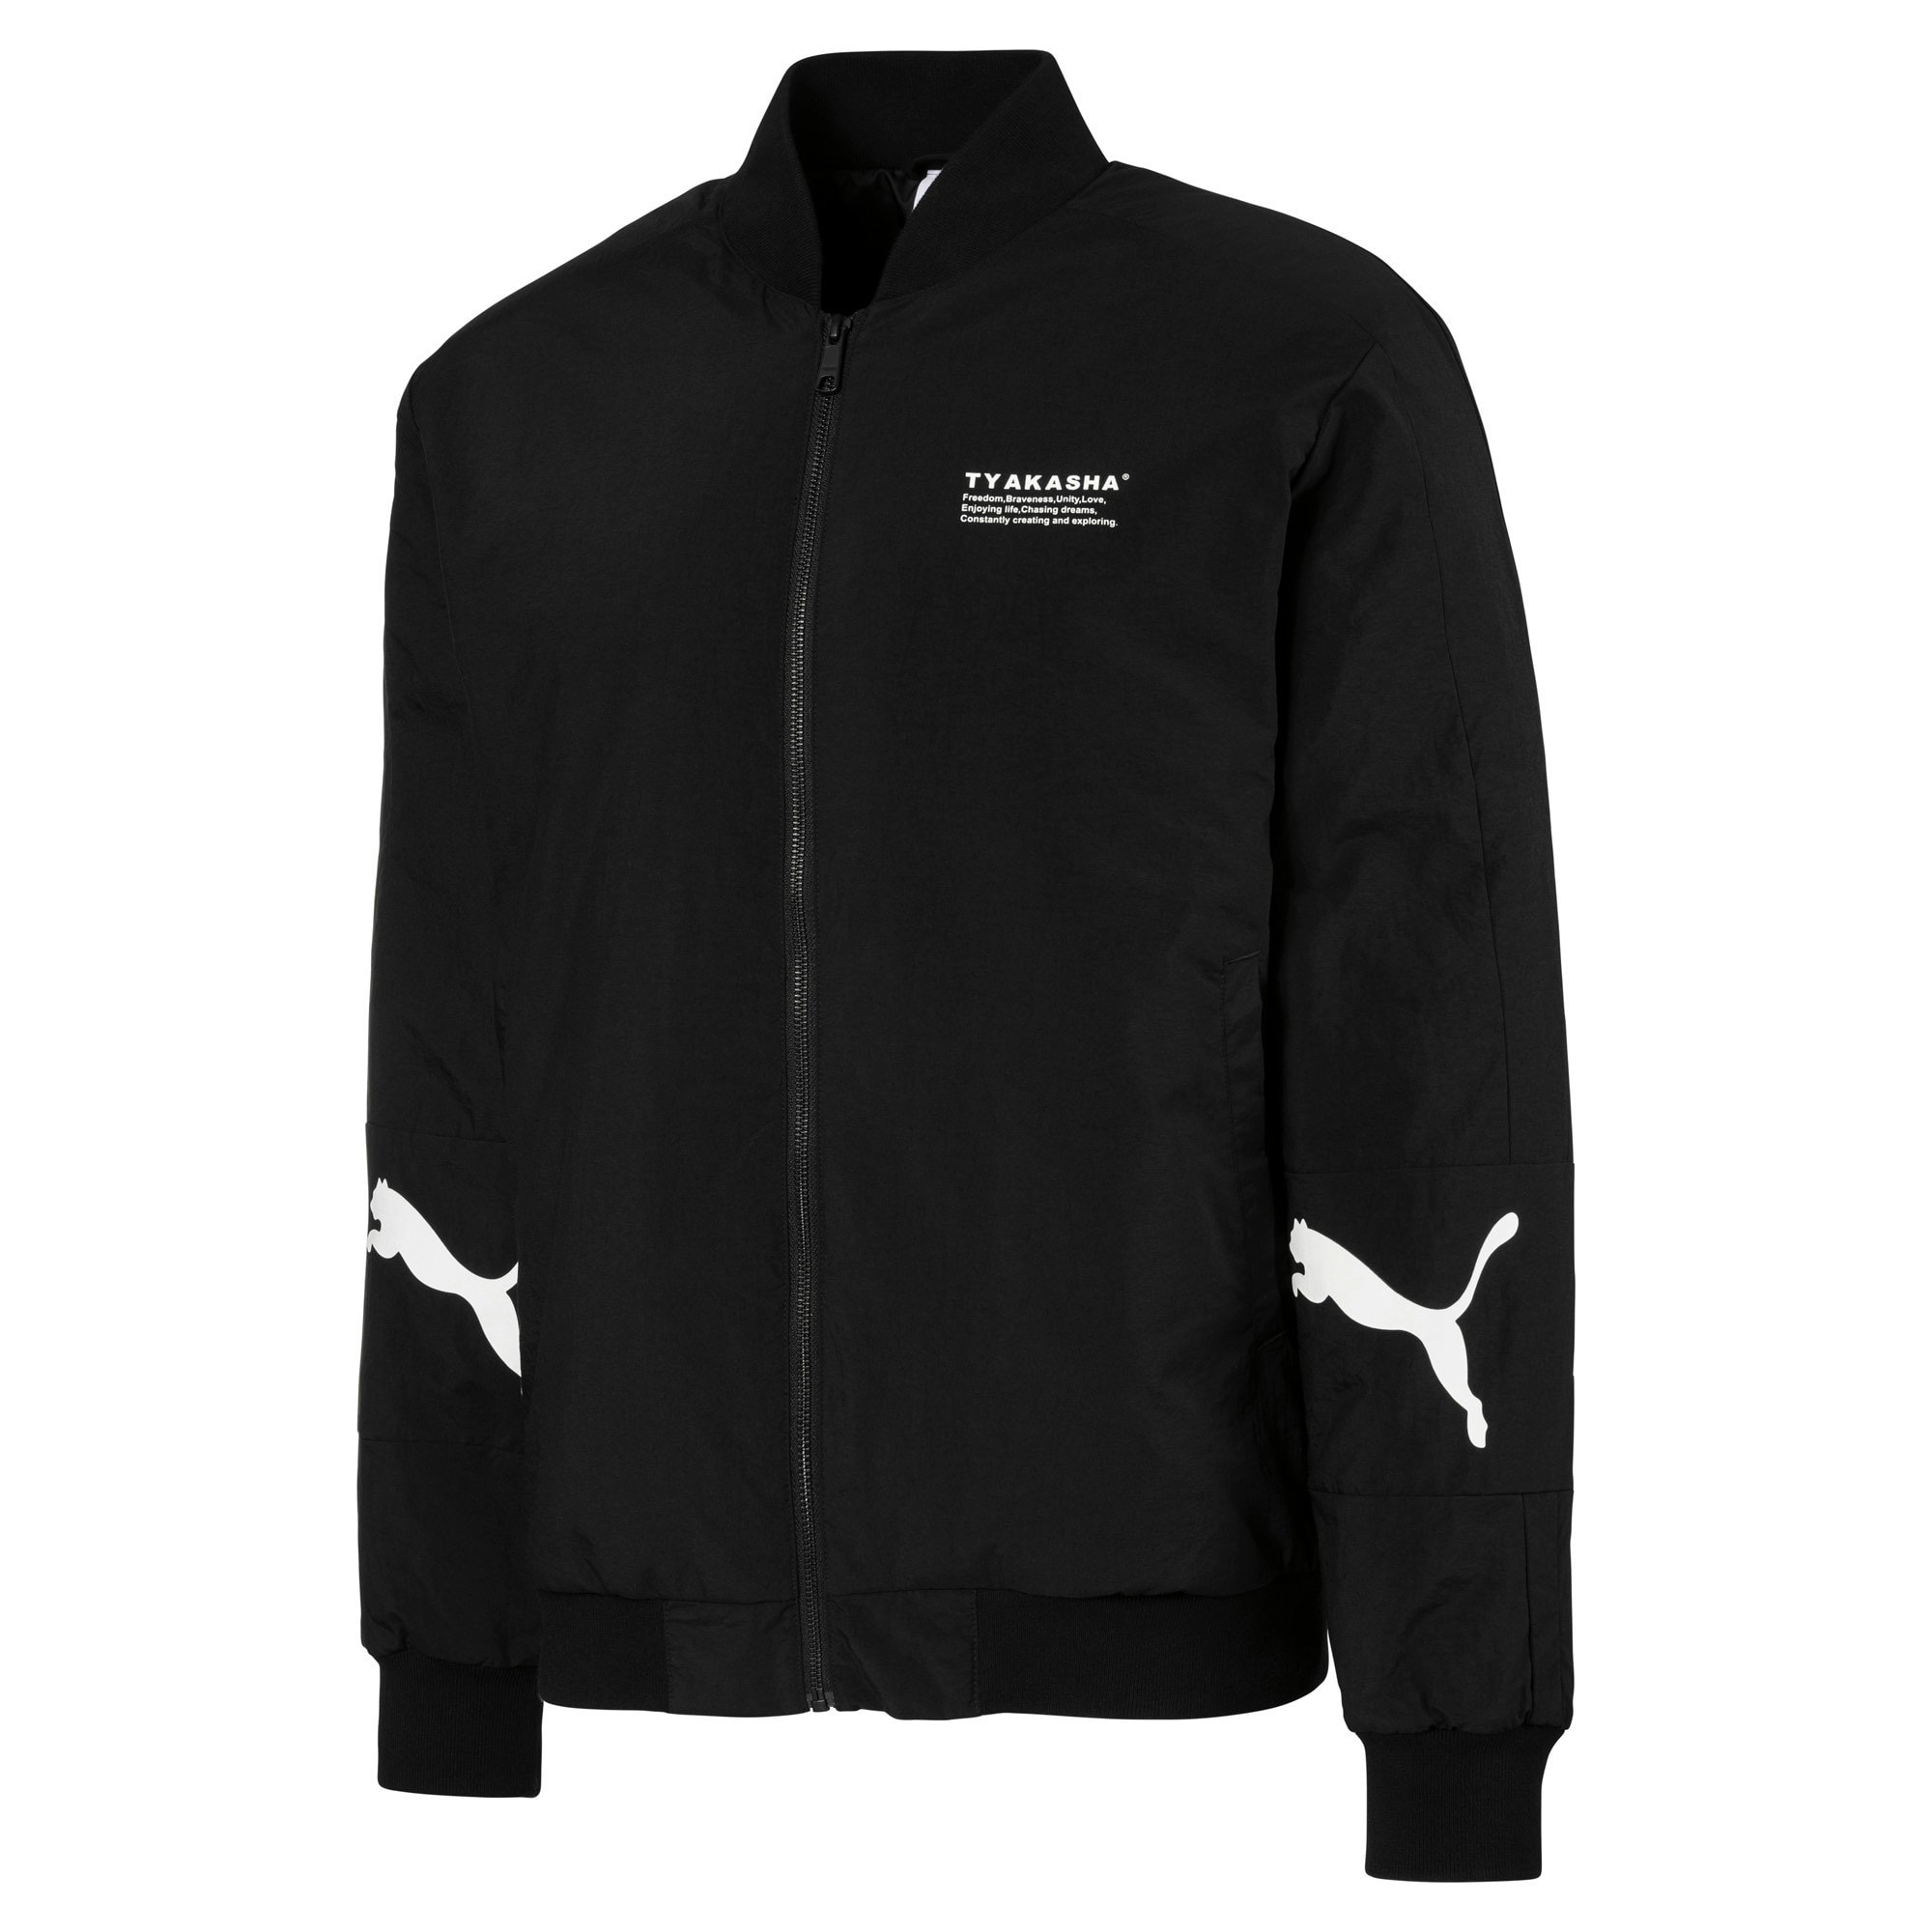 Thumbnail 1 of PUMA x TYAKASHA Woven Bomber Jacket, Puma Black, medium